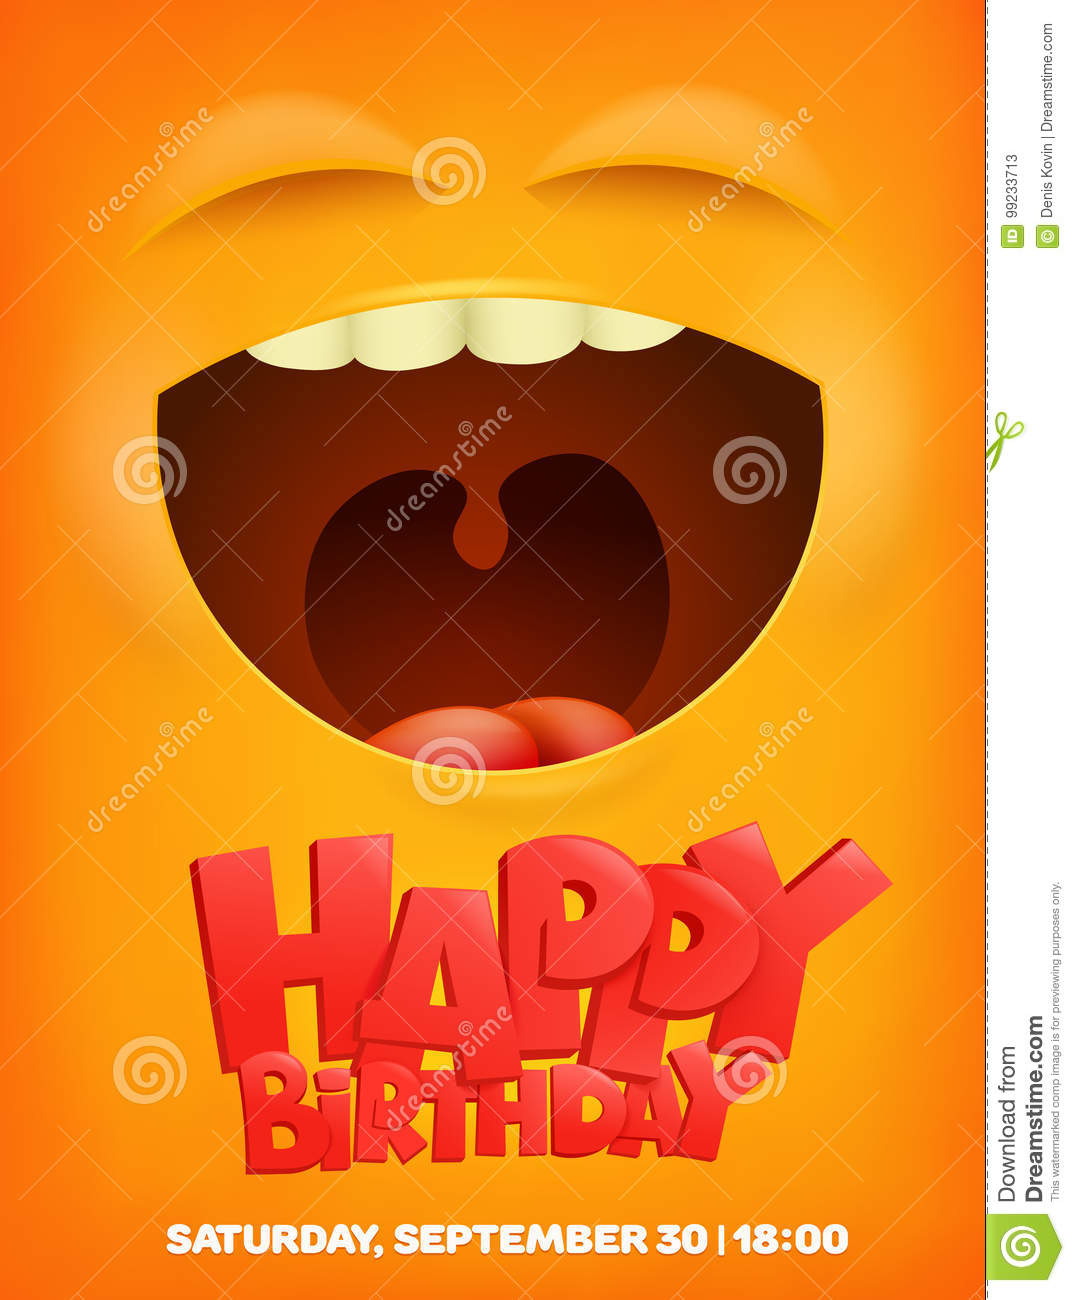 Happy Birthday Greeting Card With Emoji Smile Face